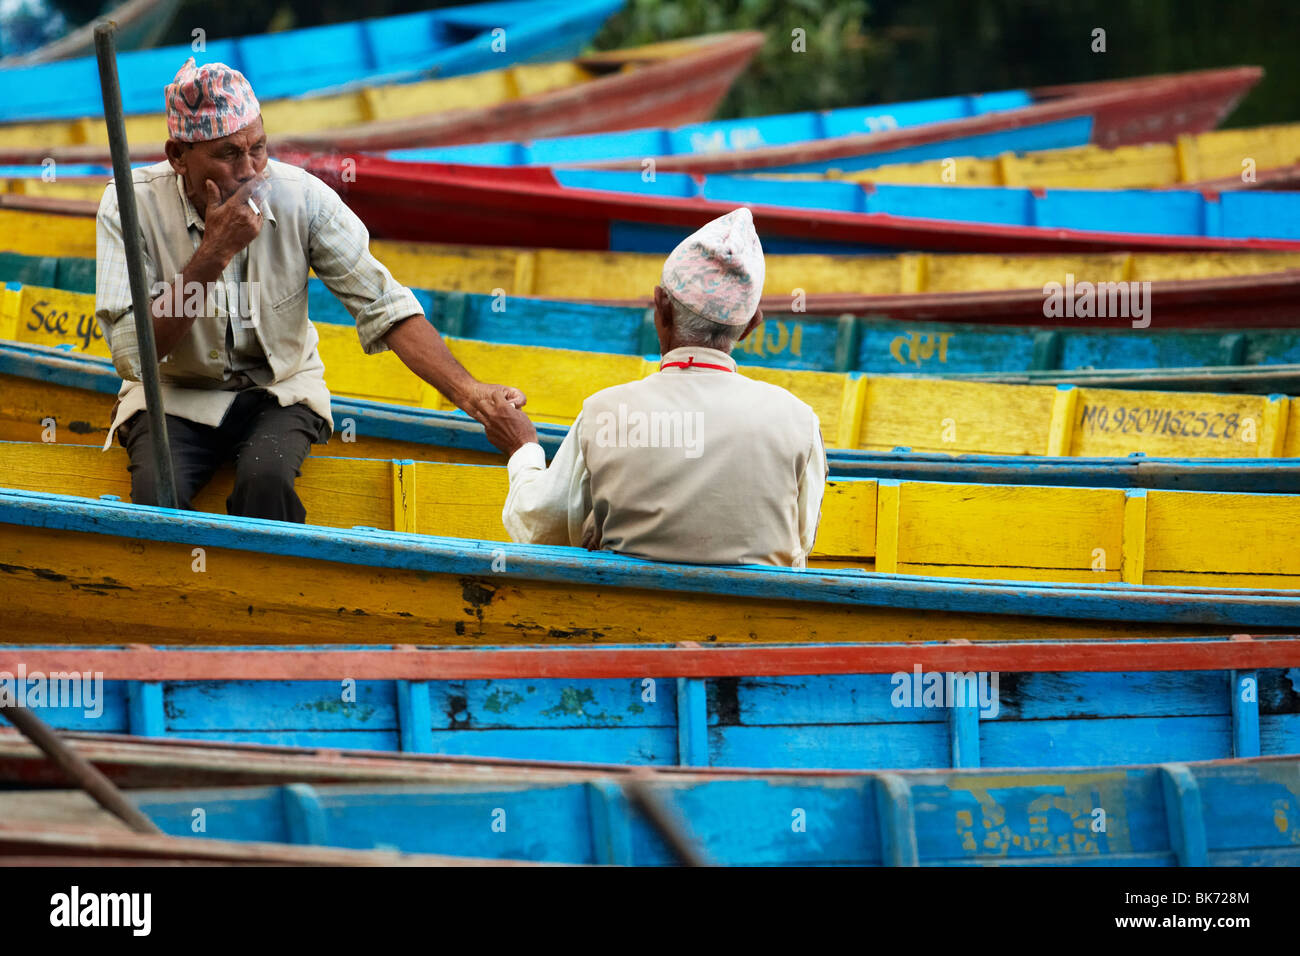 Two old men sitting on row boats share a cigarette in Pokhara, Nepal. - Stock Image